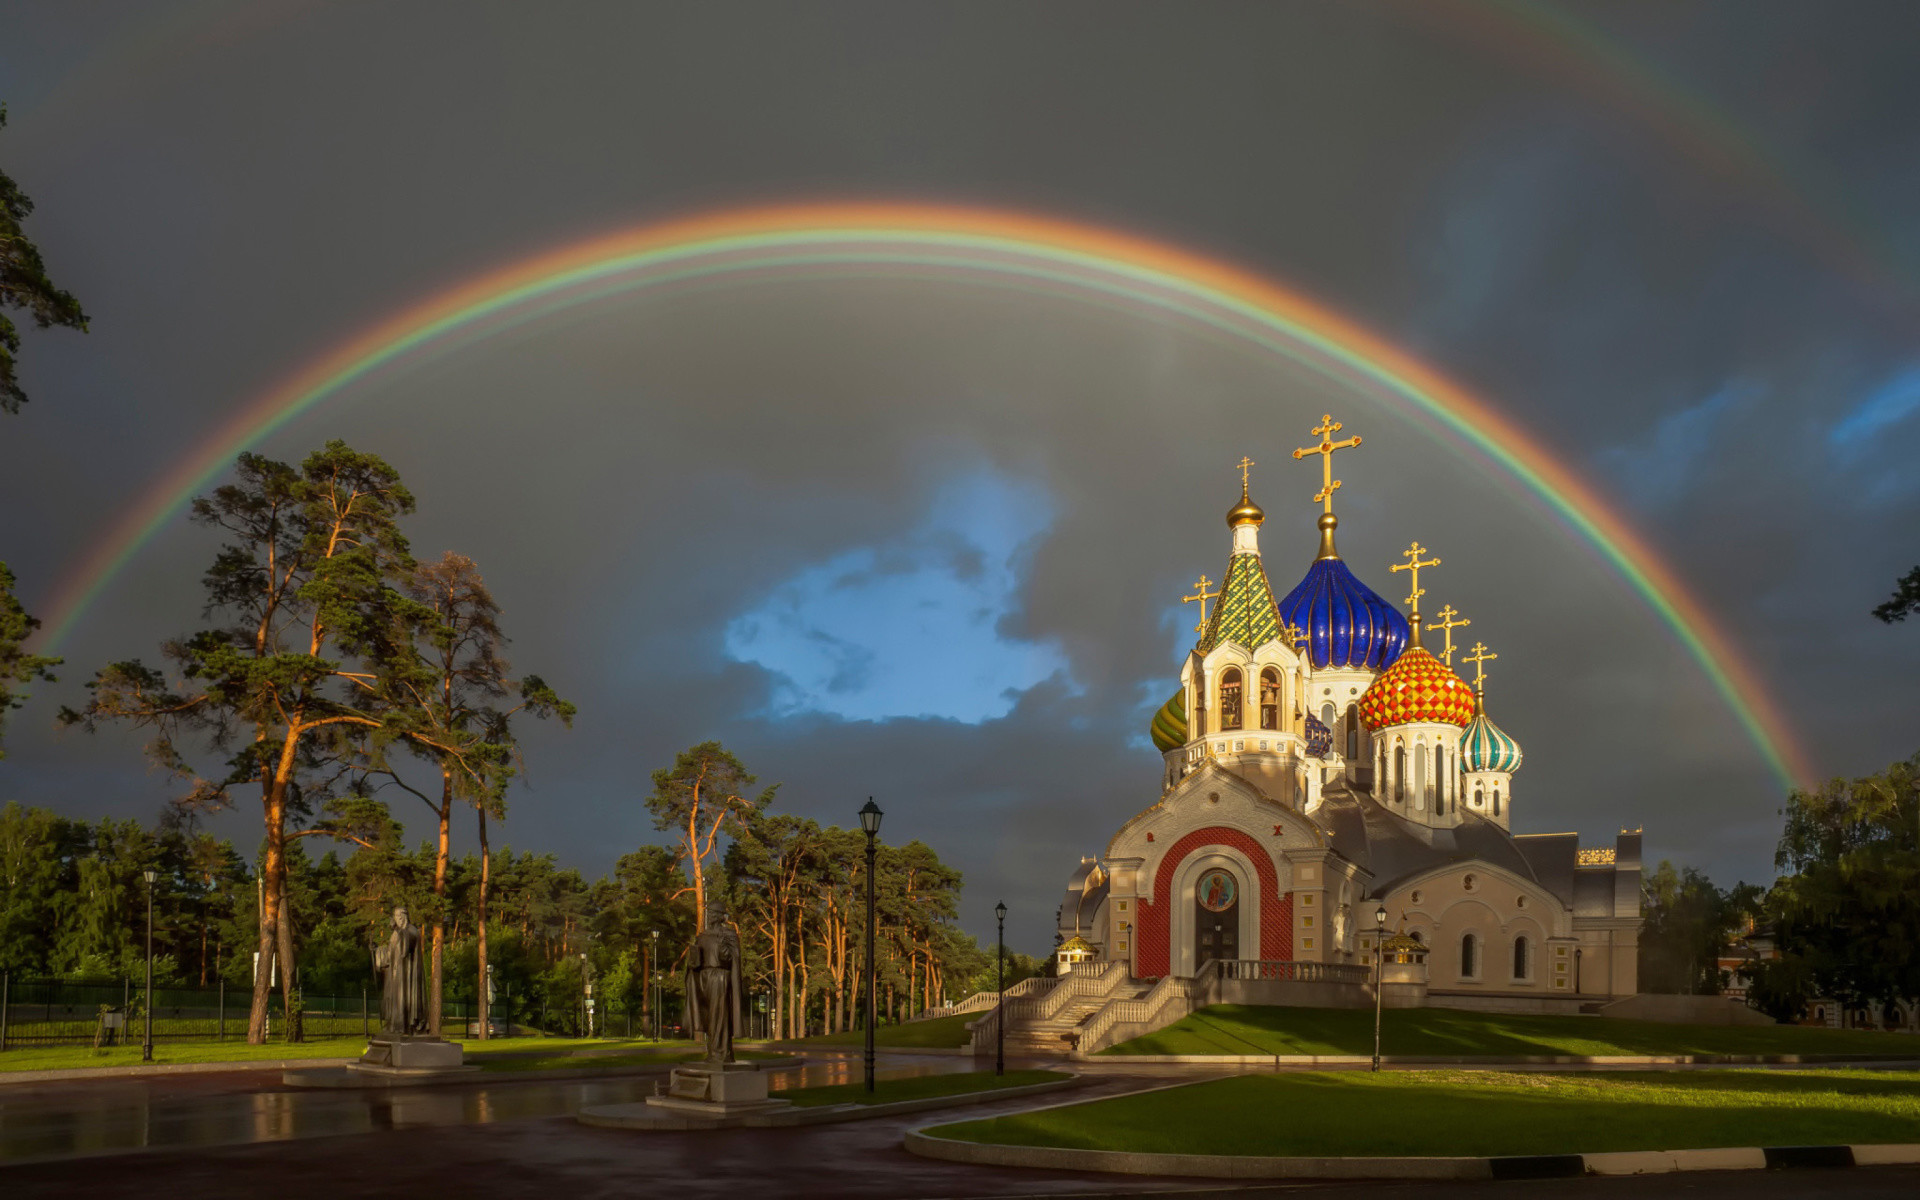 1920x1200 Wallpaper Ukraine Pryluky Chernigov oblast Fence Temples 1680x1050 Church  ...